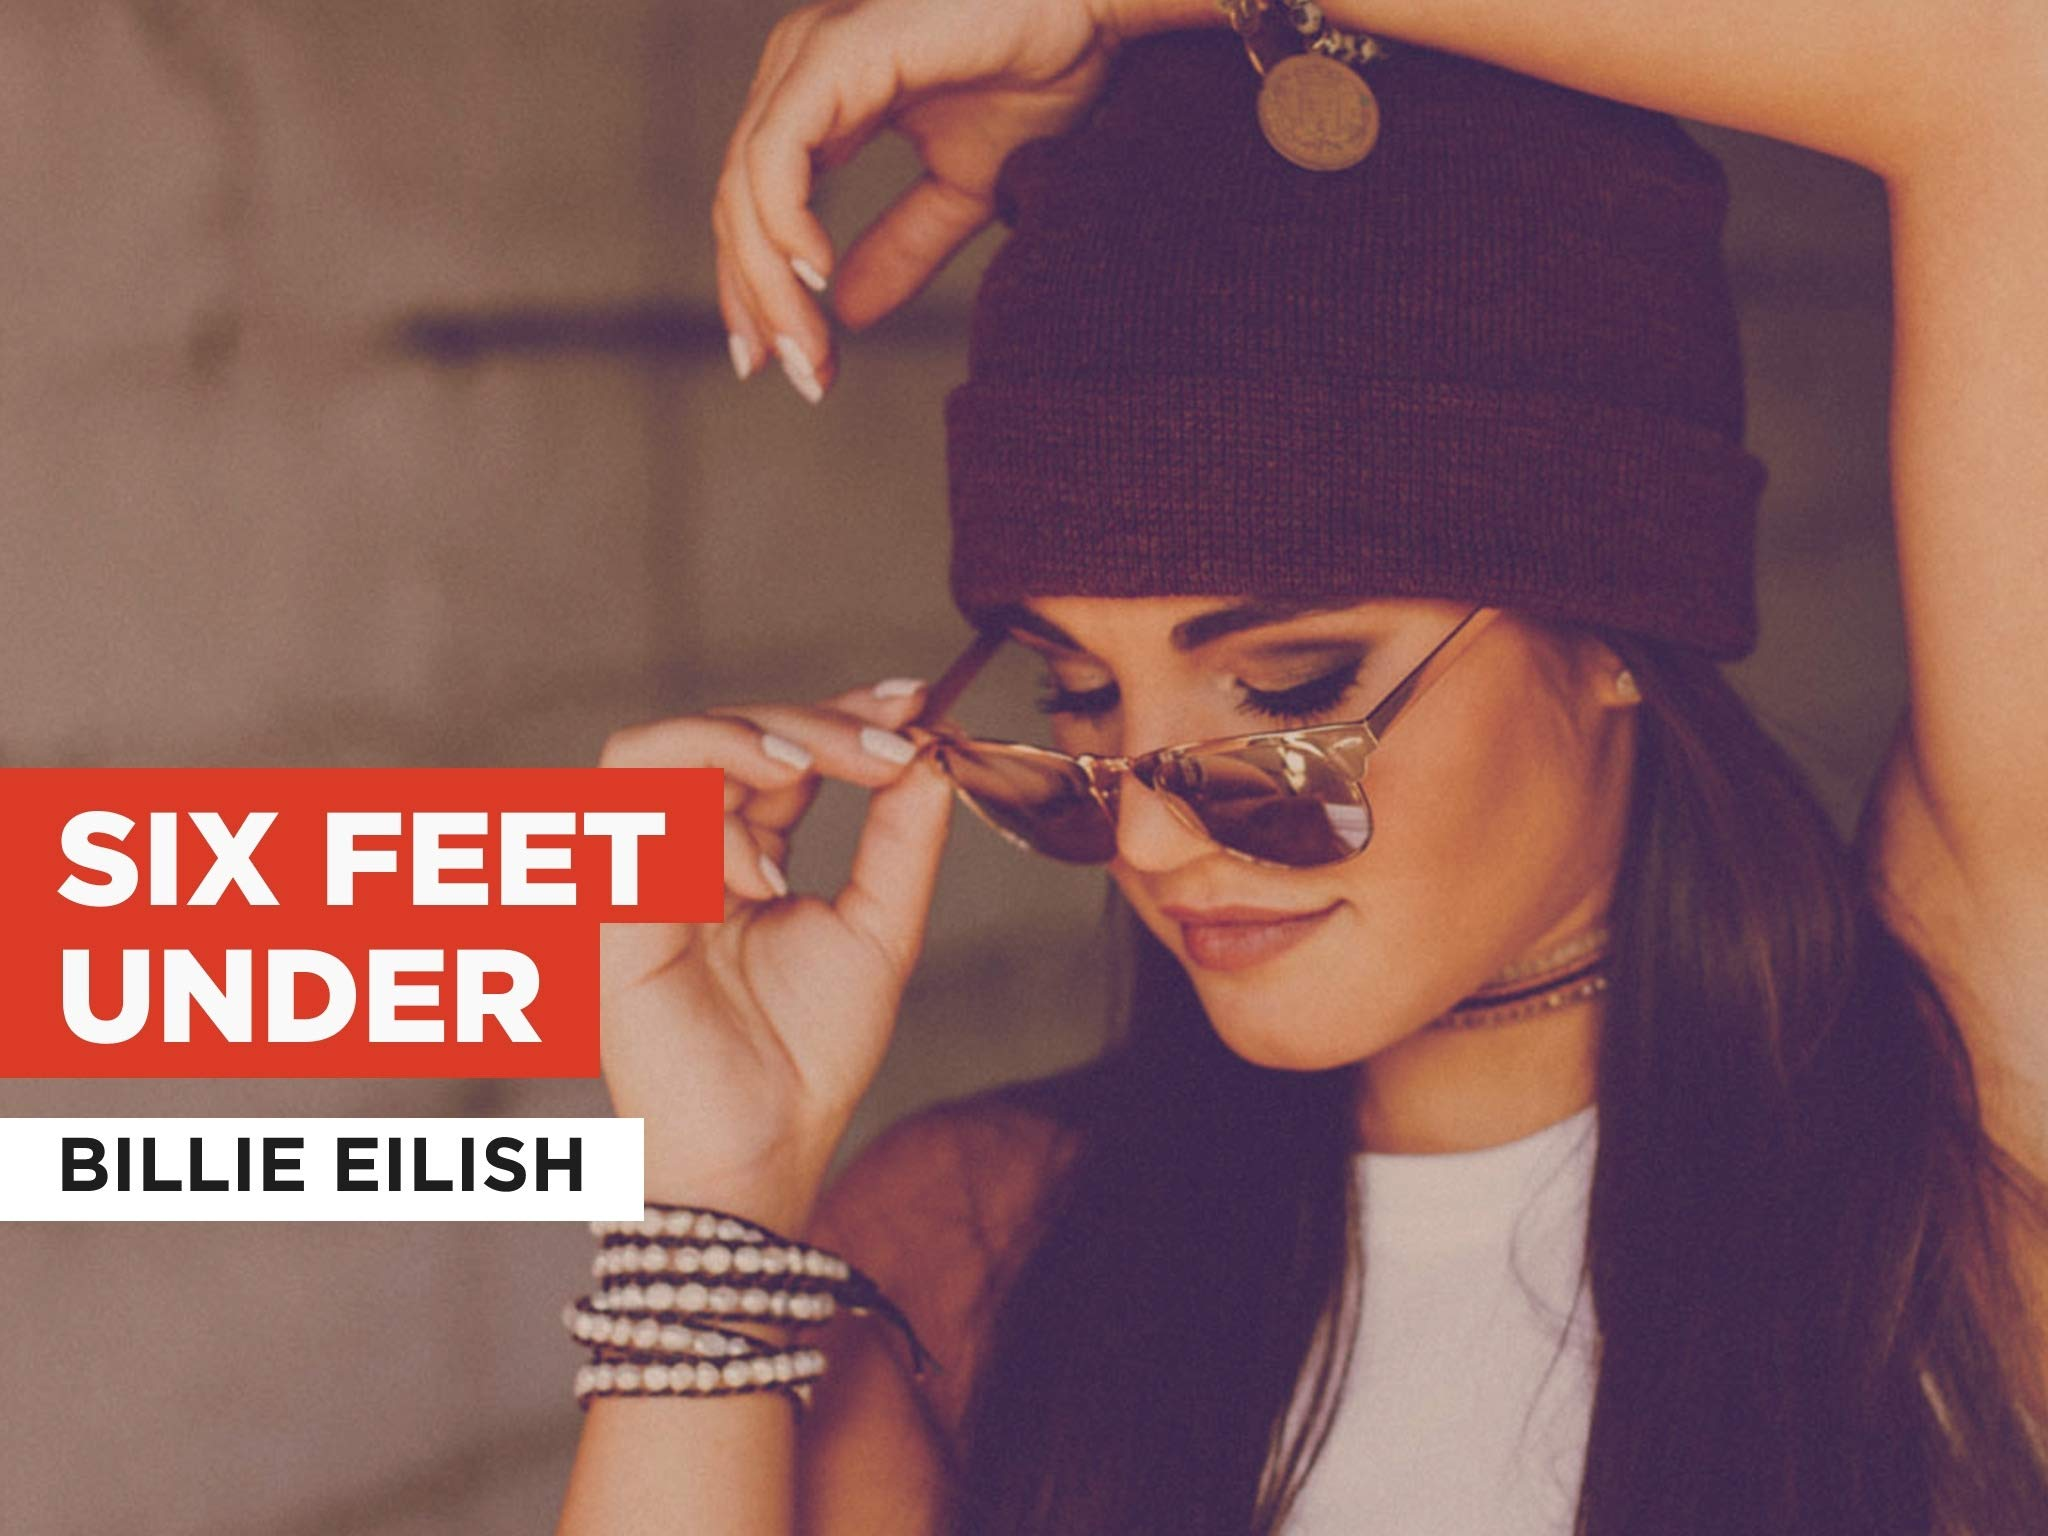 Watch Six Feet Under In The Style Of Billie Eilish Prime Video Lovely (with khalid) billie eilish 3:18320 kbps watch six feet under in the style of